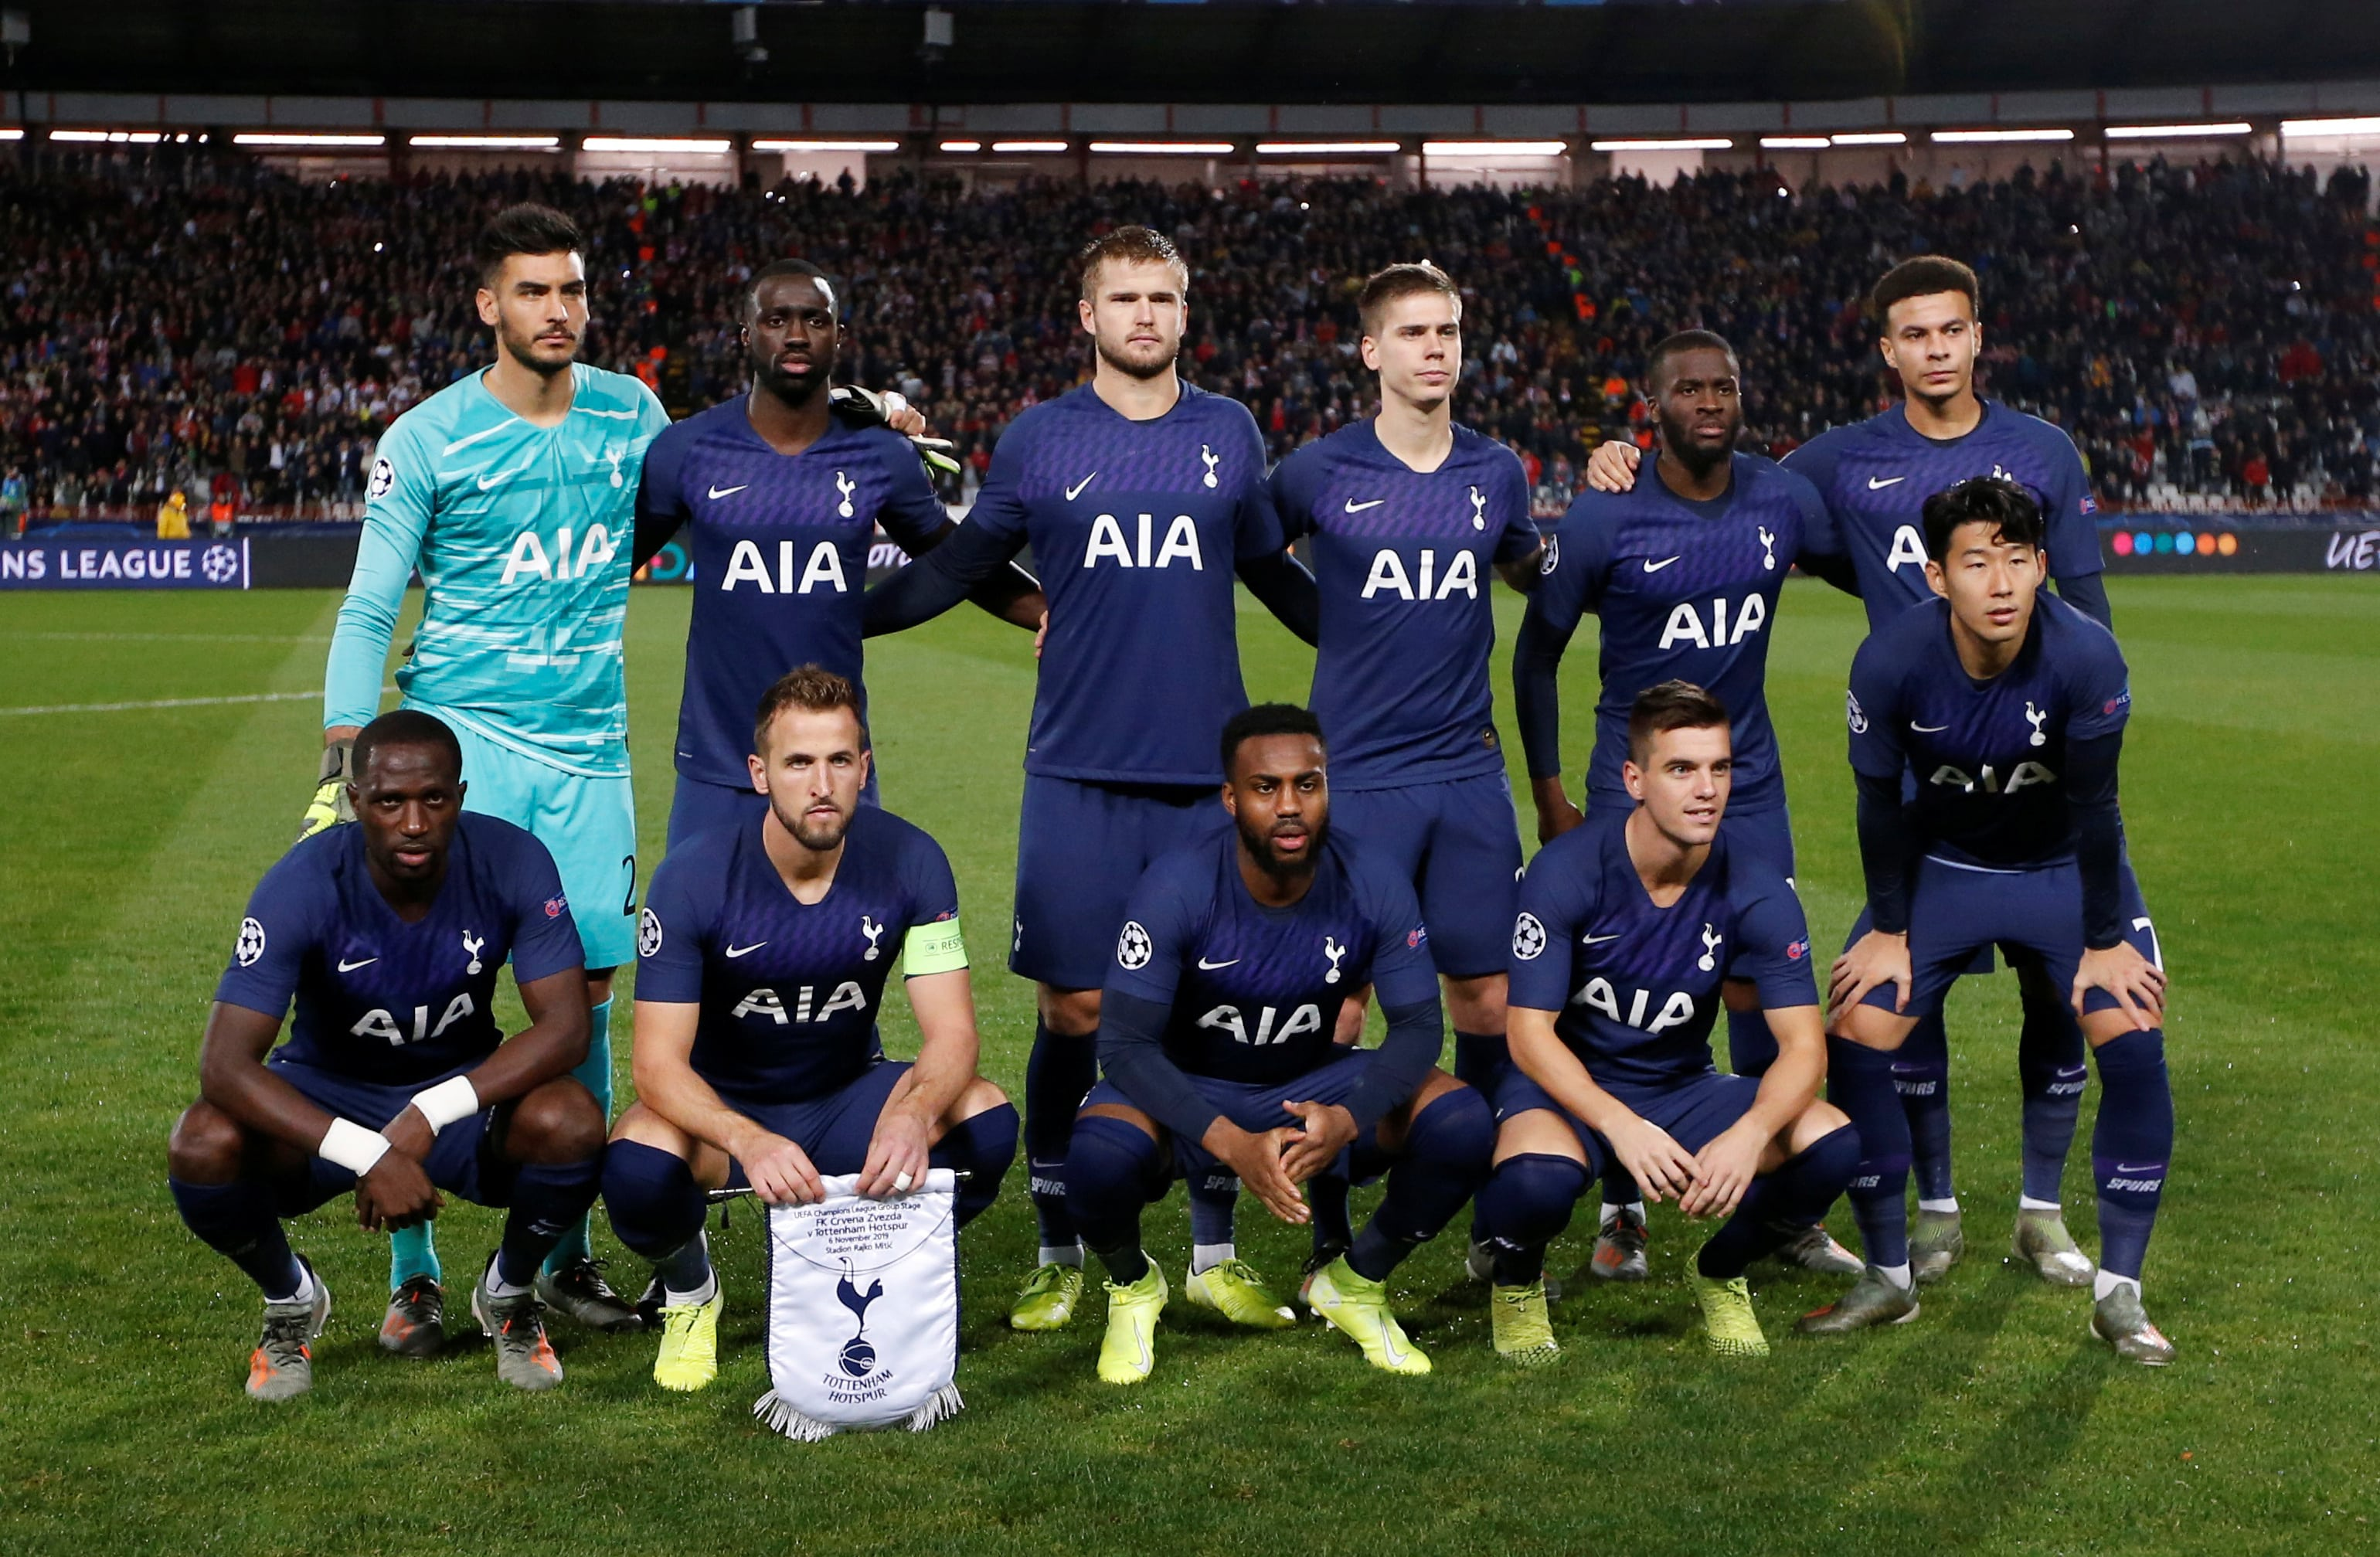 Tottenham Top European competition scorers